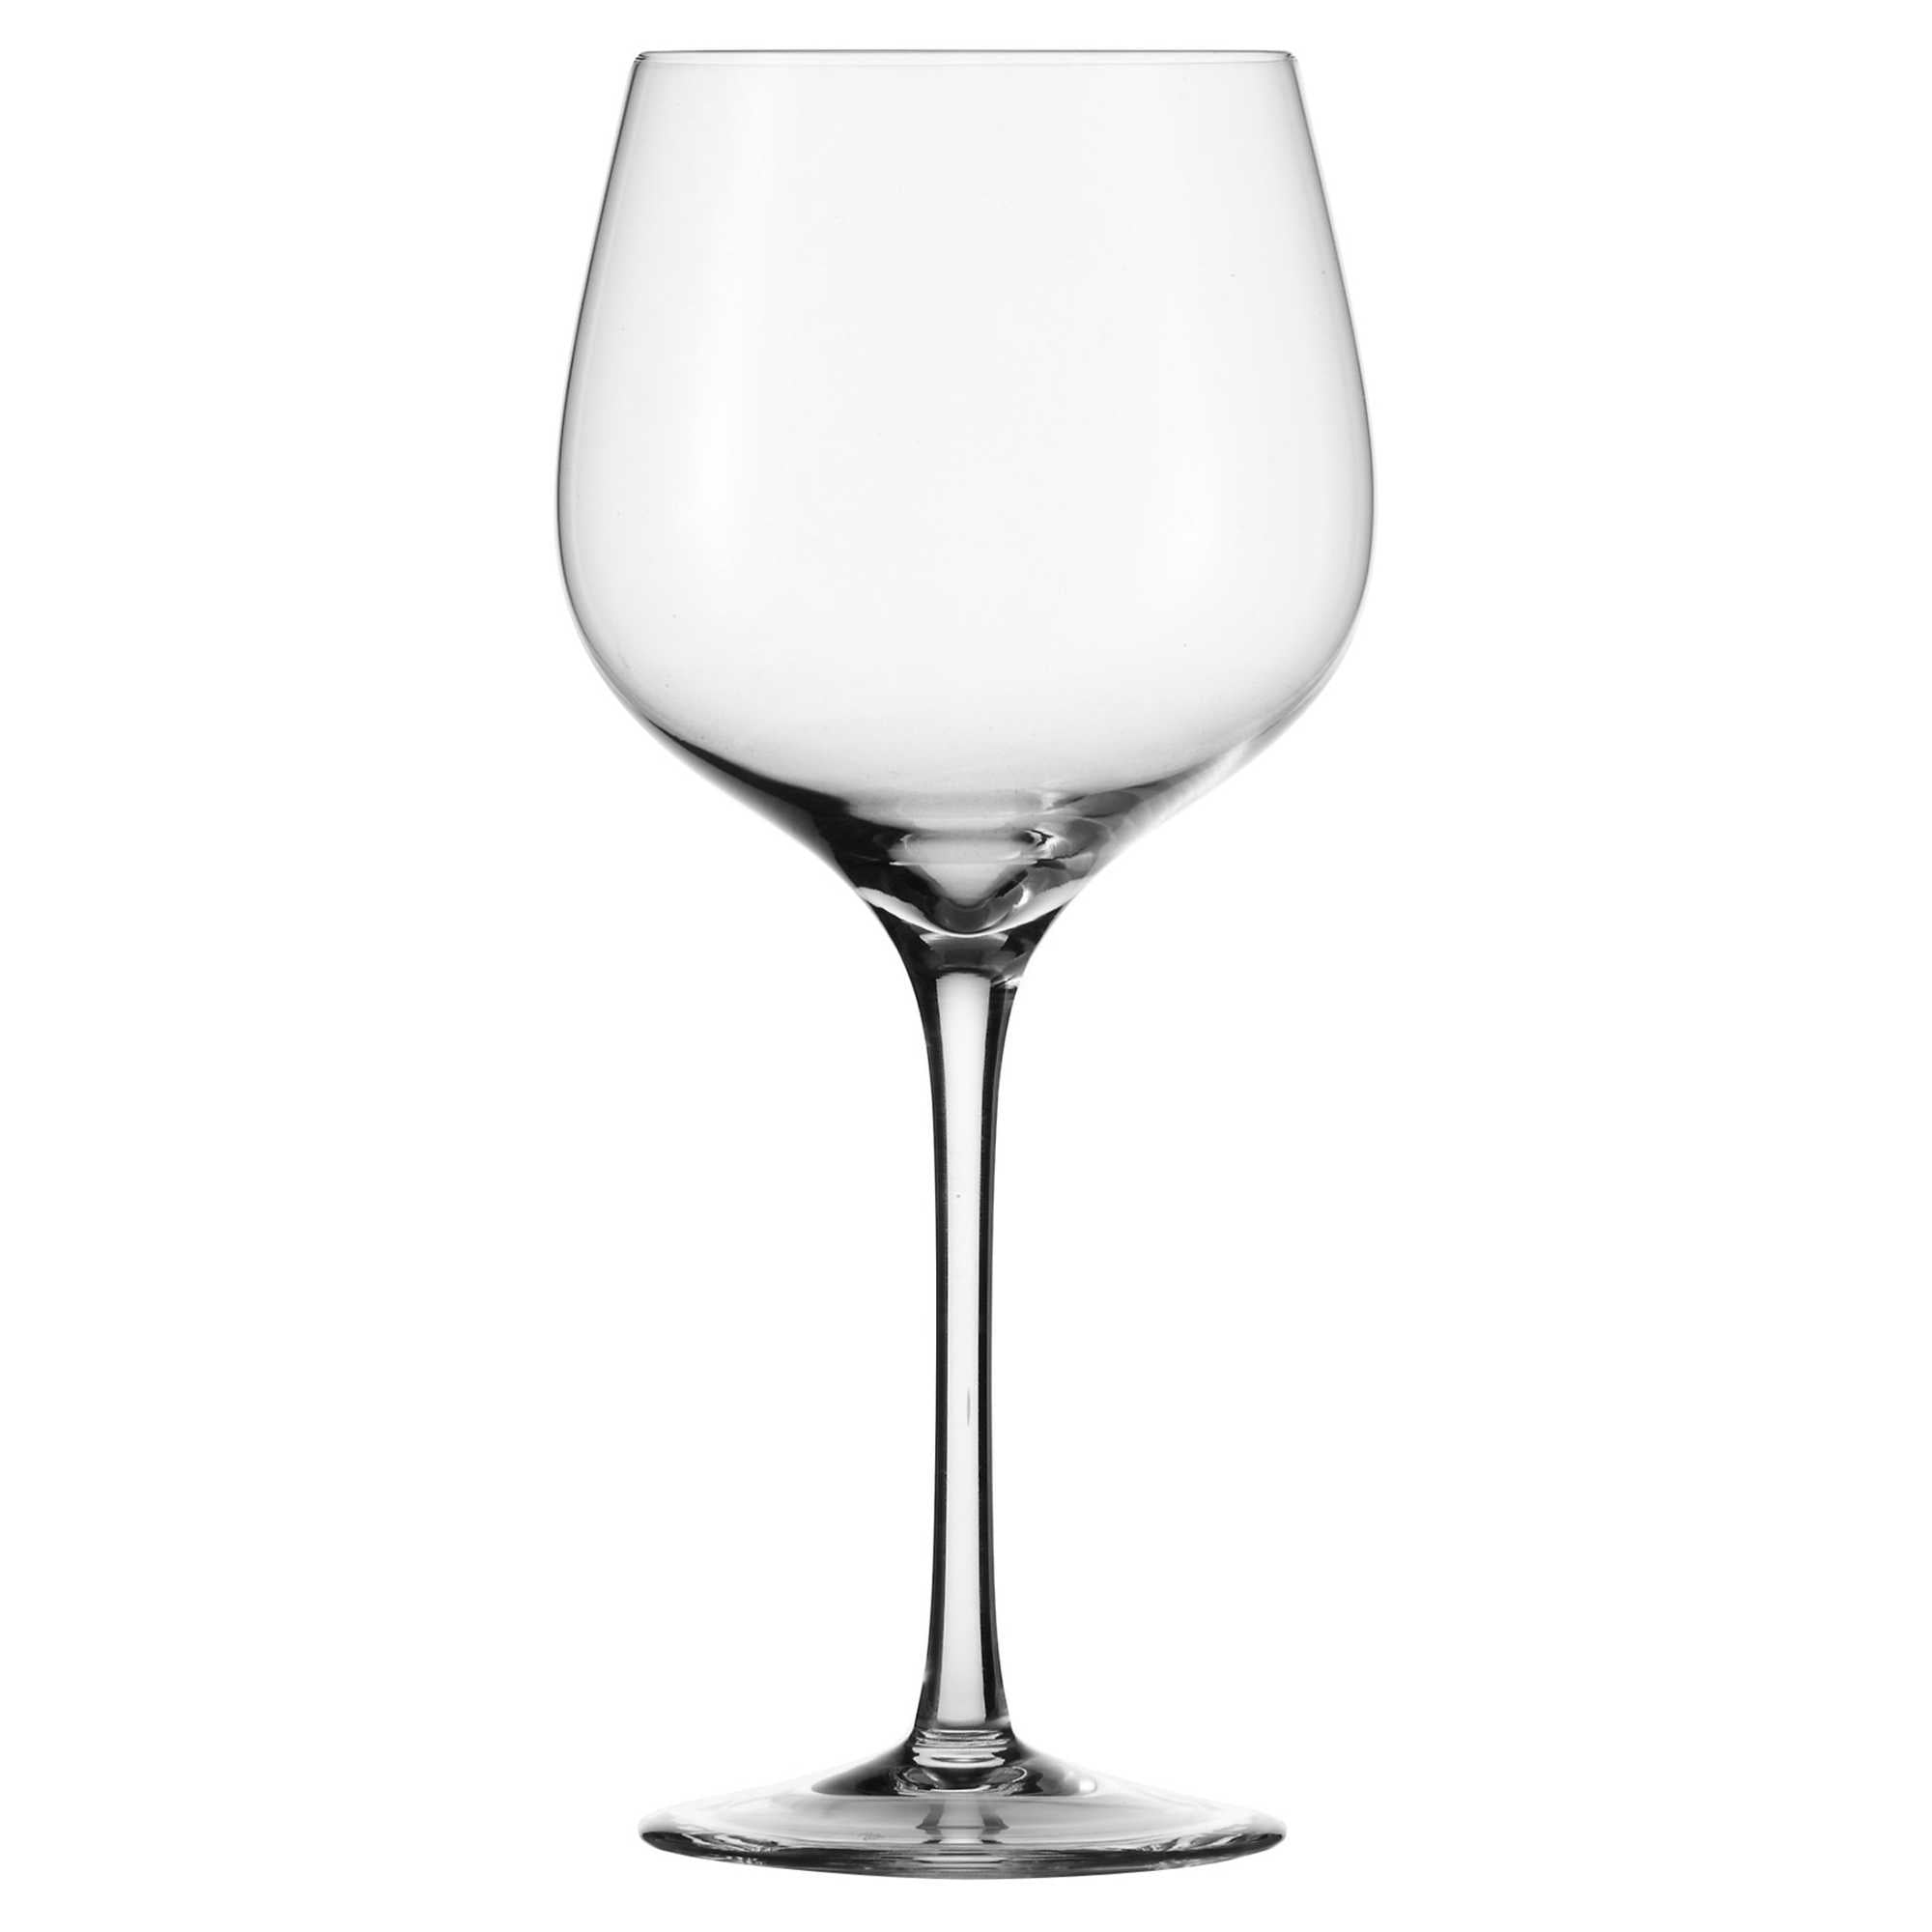 Eisch Superior Sensis Plus Burgundy Glasses (Set of 2)